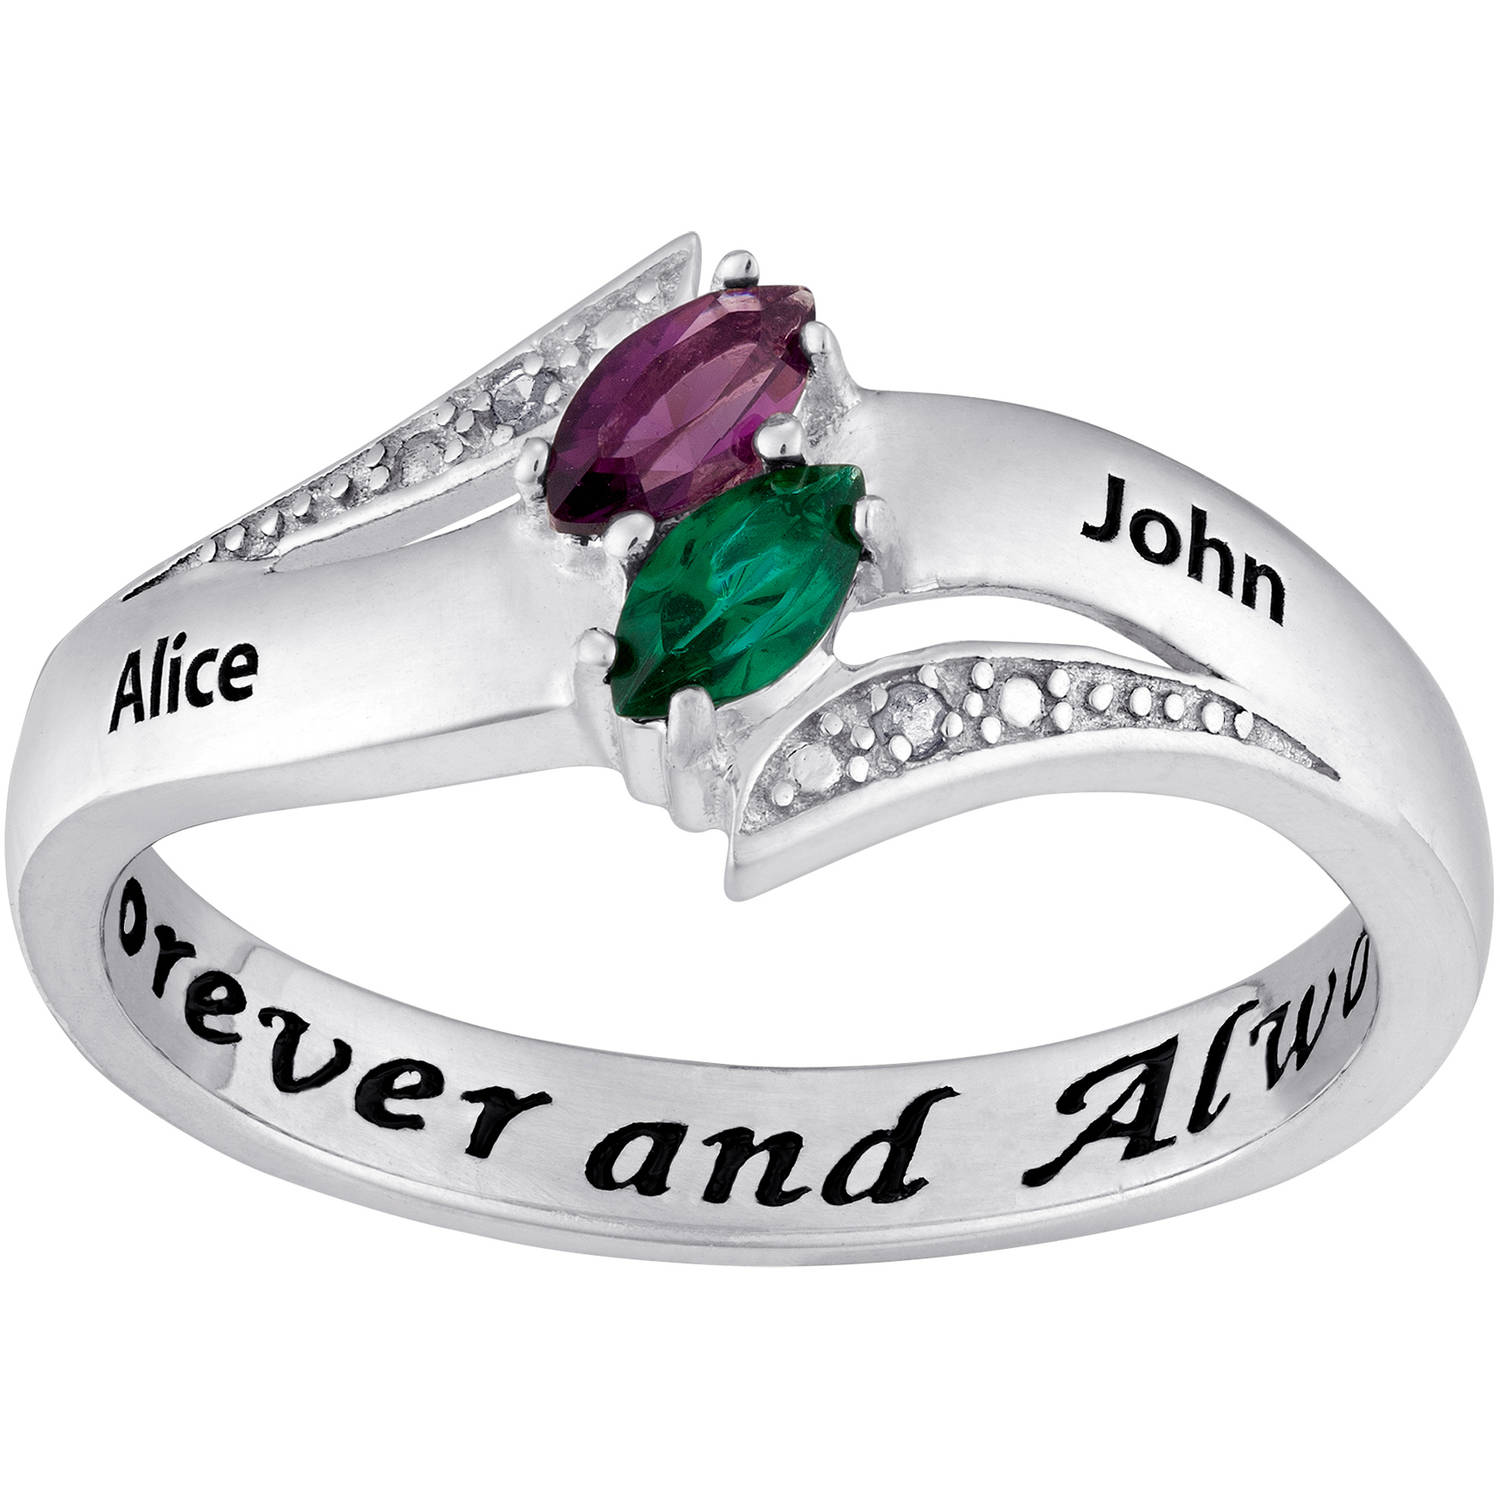 Couple's Personalized Promise Ring in Sterling Silver with Diamond Accents